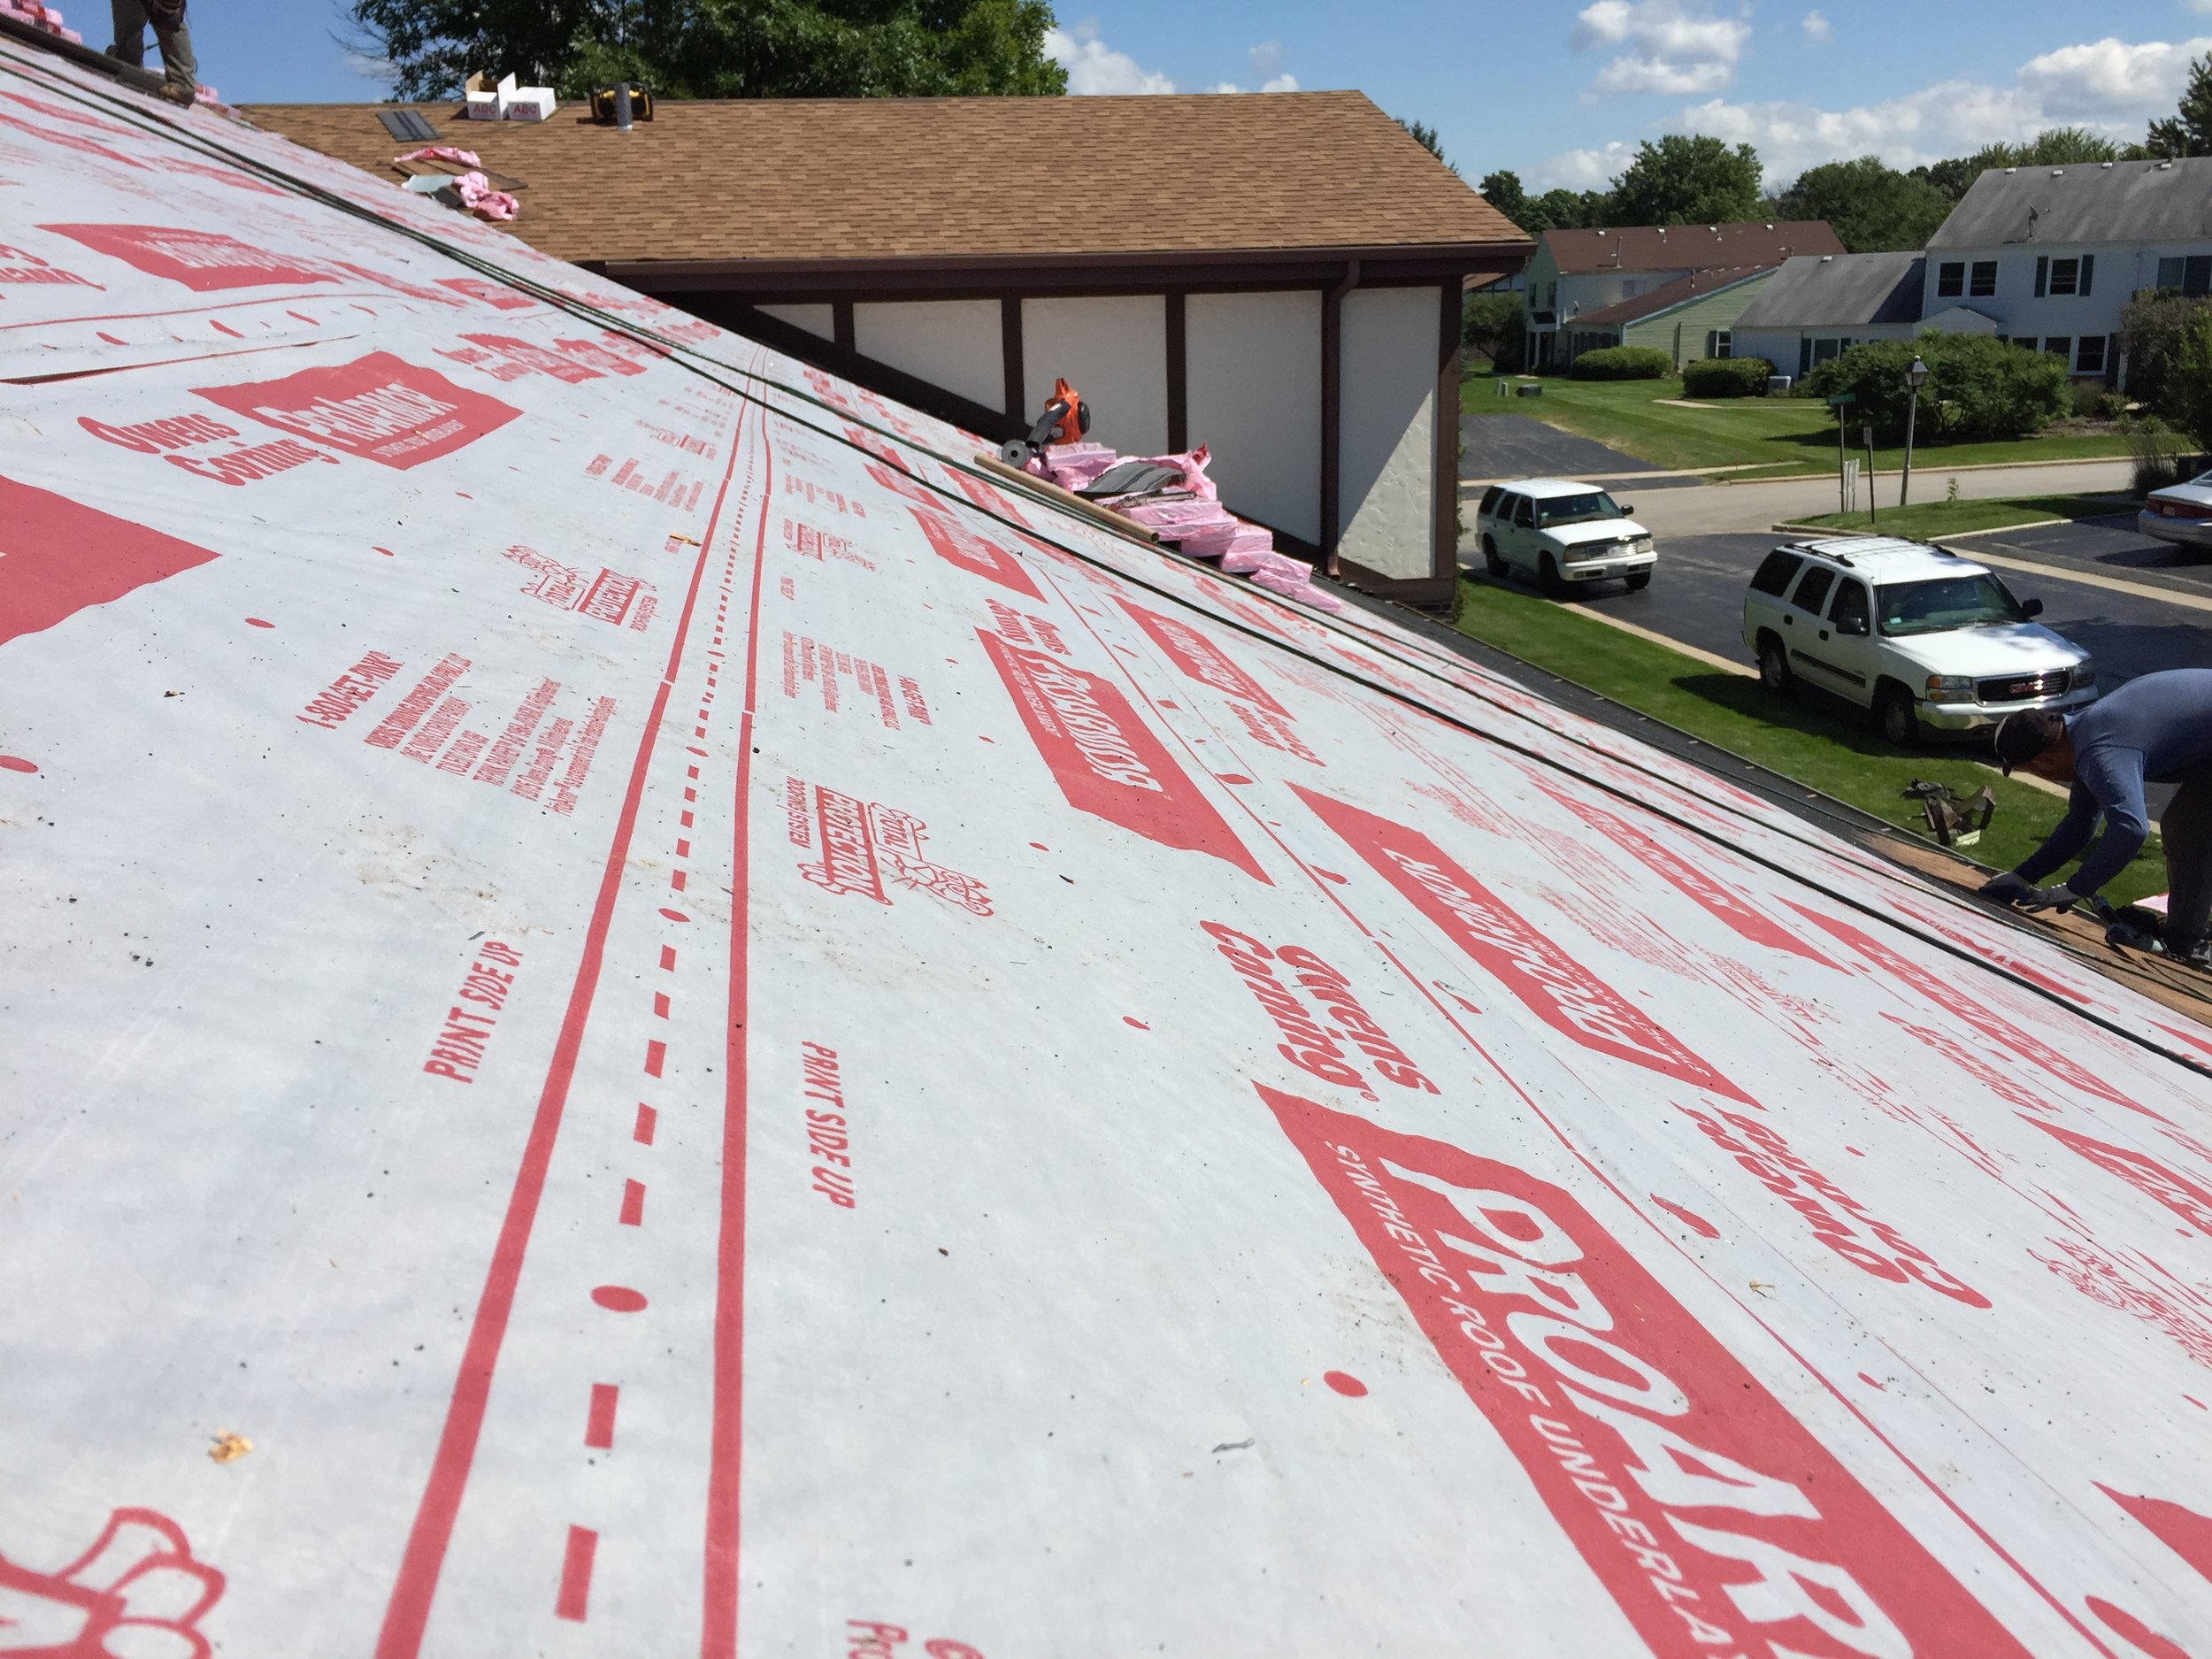 artex-roofing-trusted-roofing-replacement-tinley-park.jpg